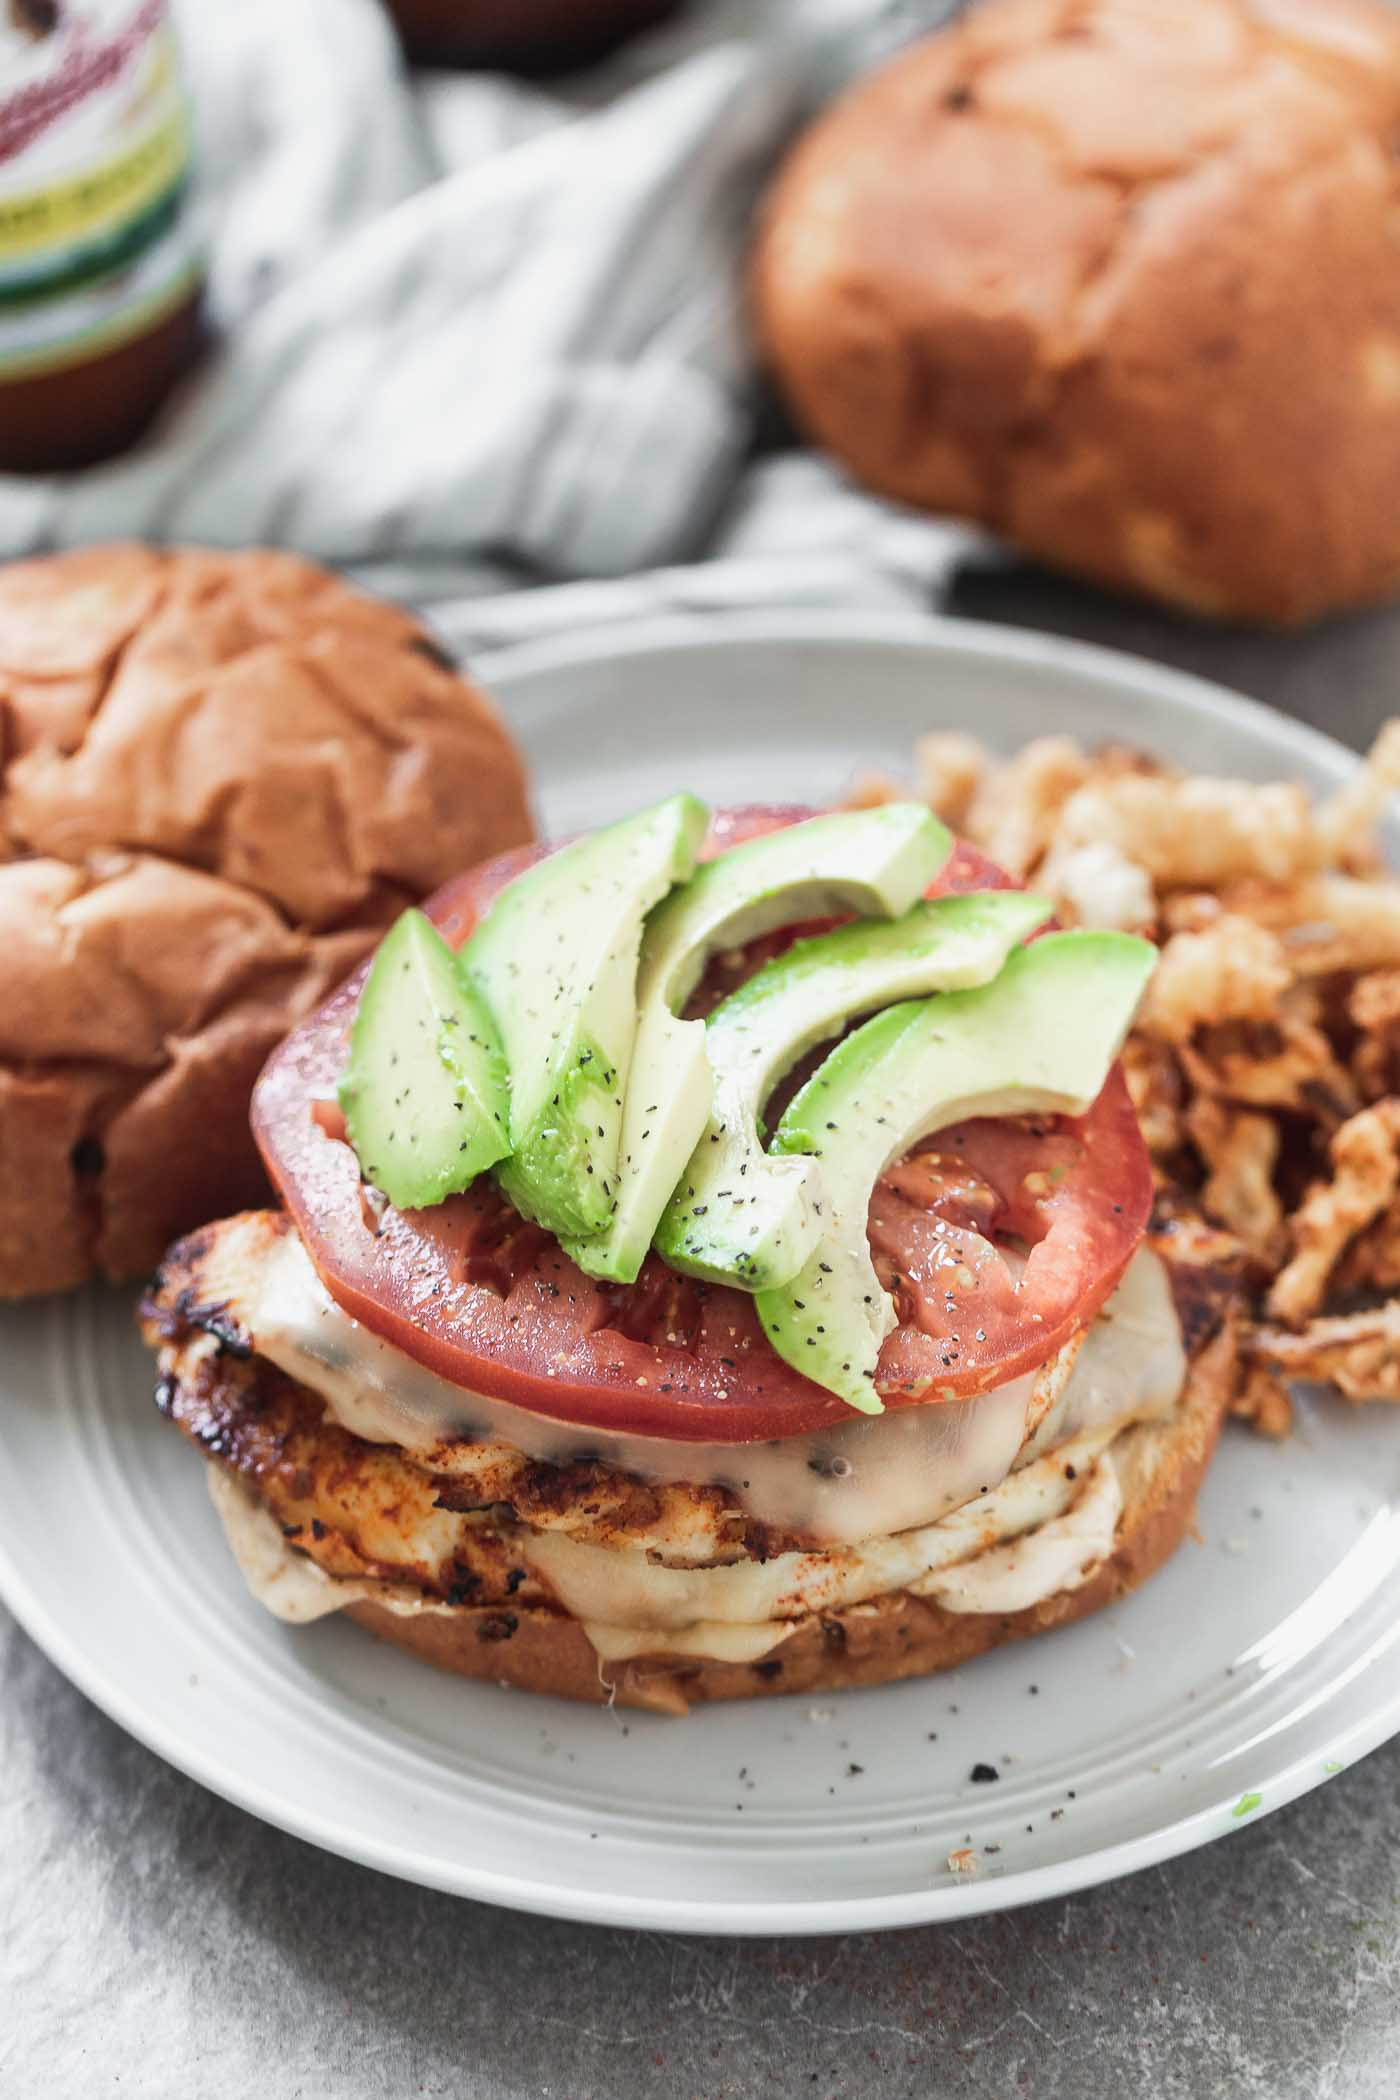 Blackened Chicken Sandwiches with Chipotle Mayo and Gouda